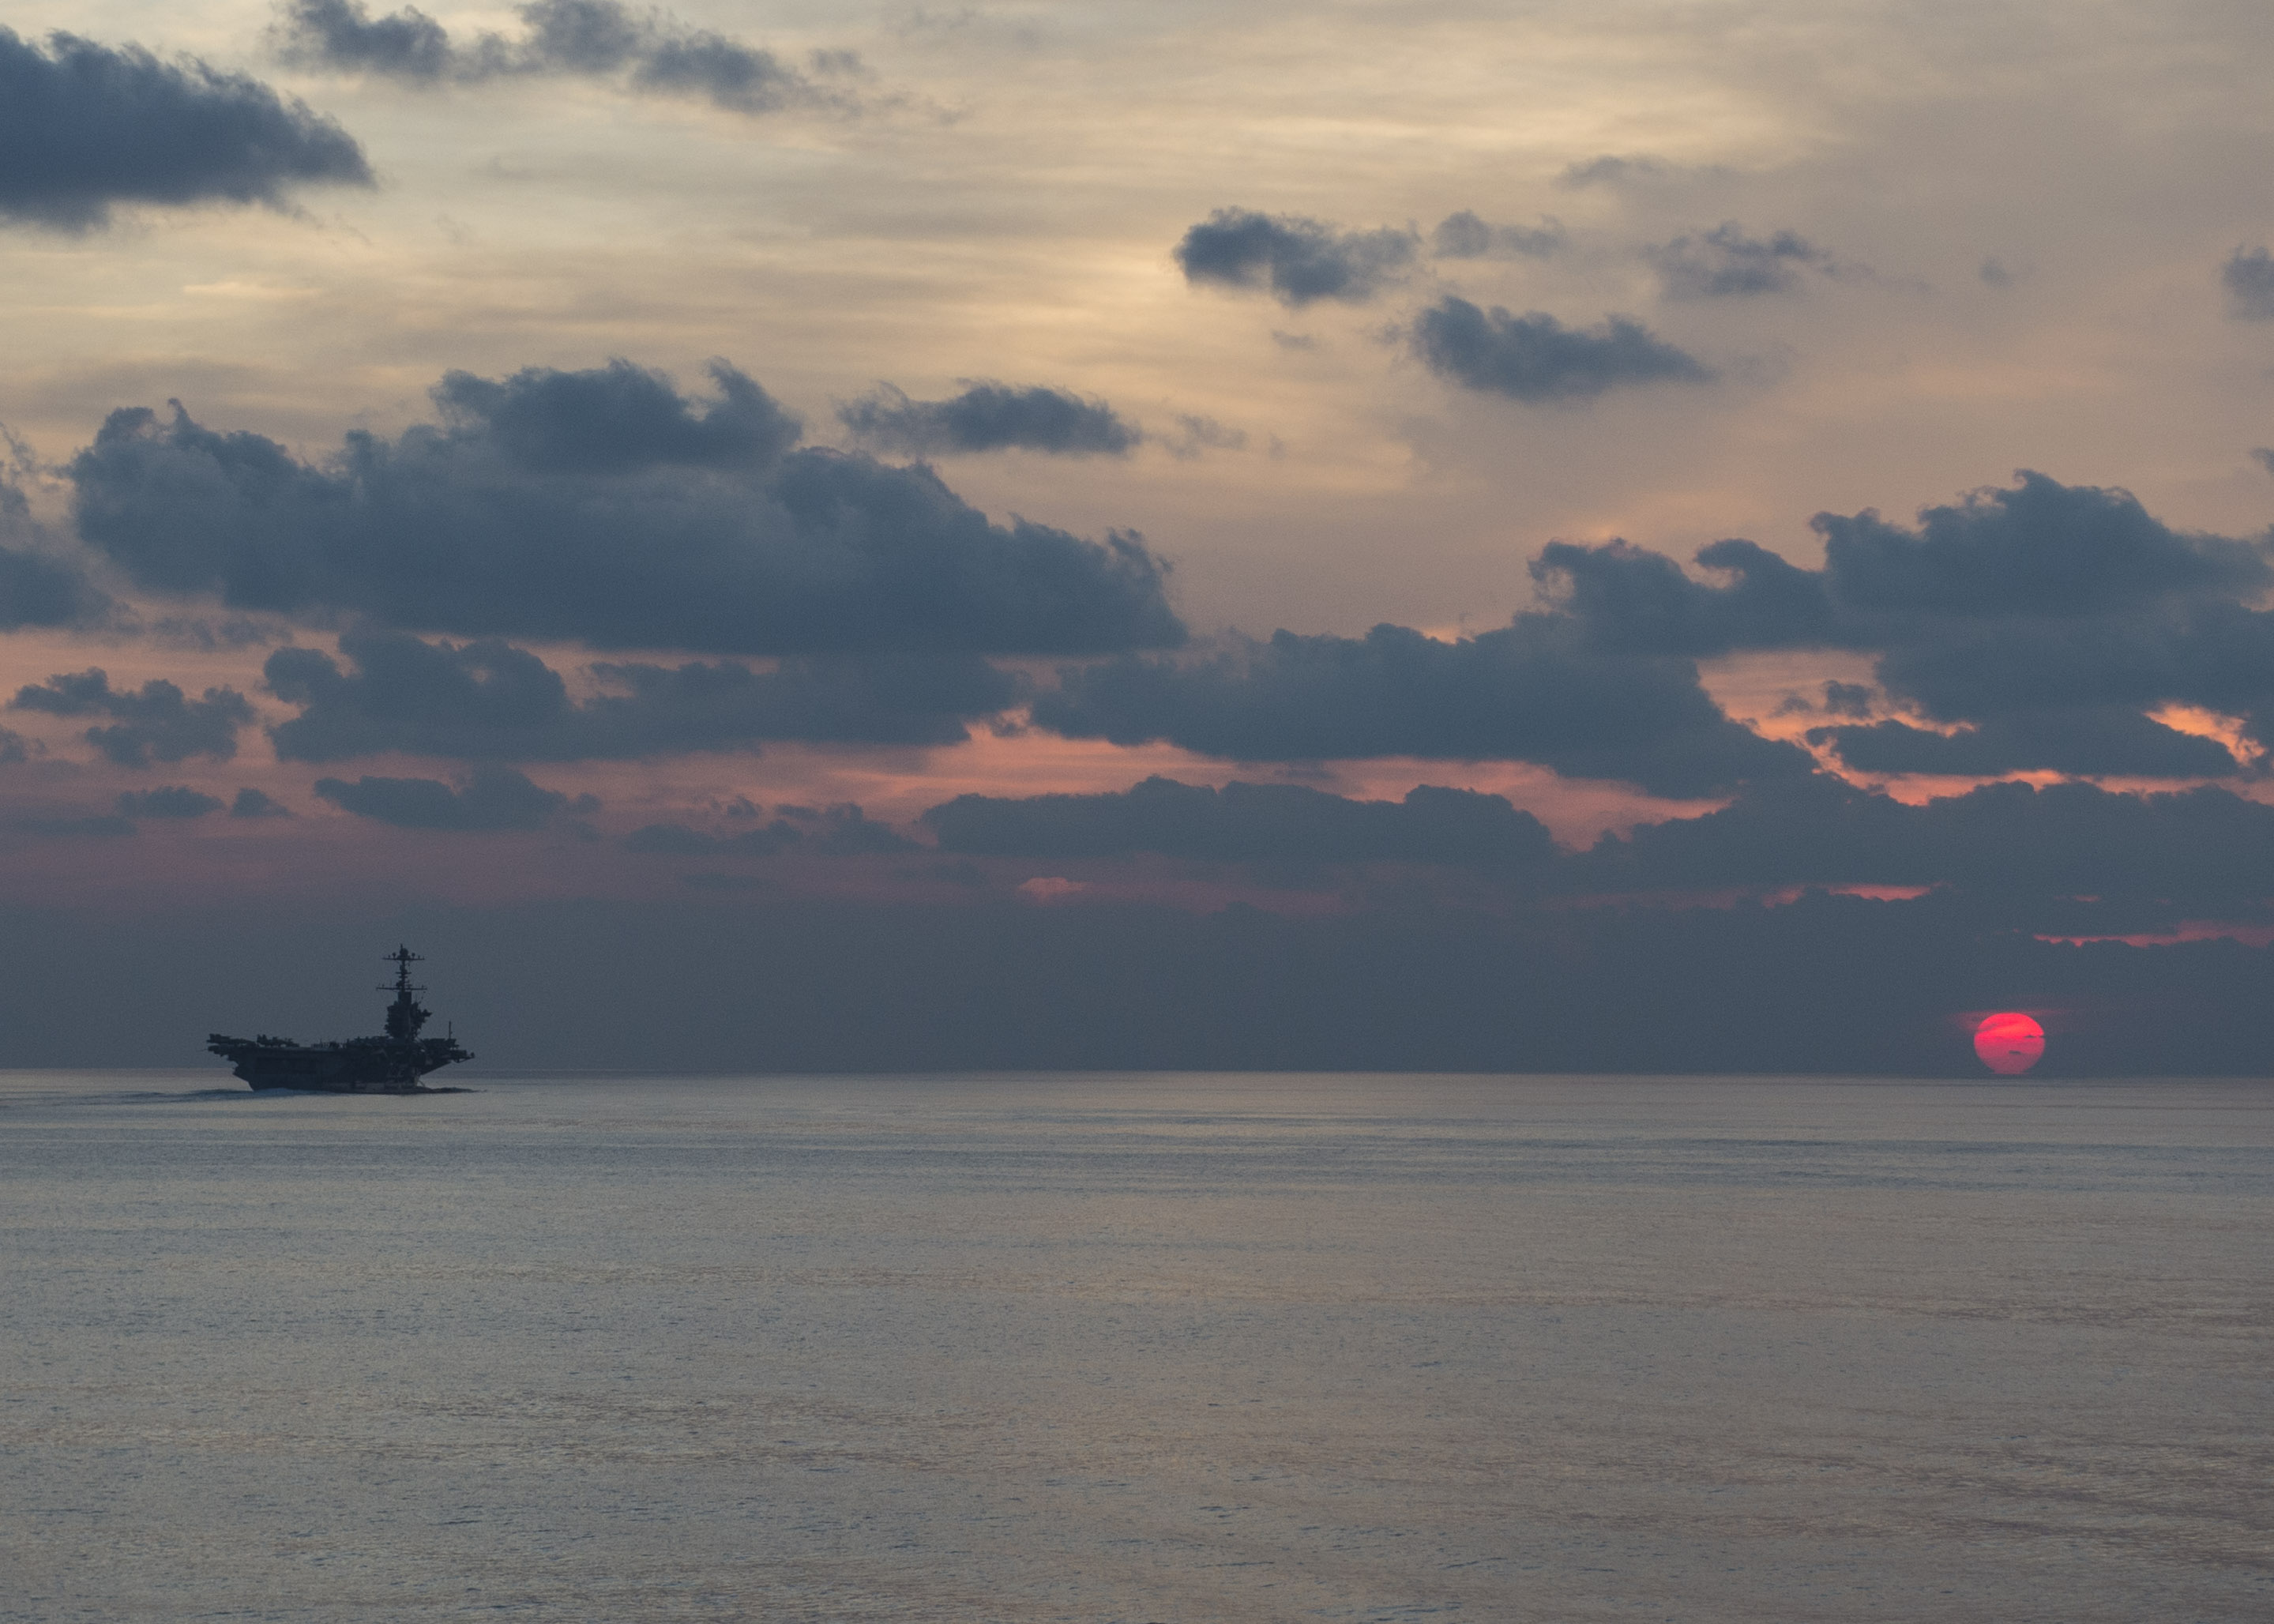 USS John C. Stennis (CVN-74) steams at dusk in the South China Sea on April 25, 2016. US Navy Photo